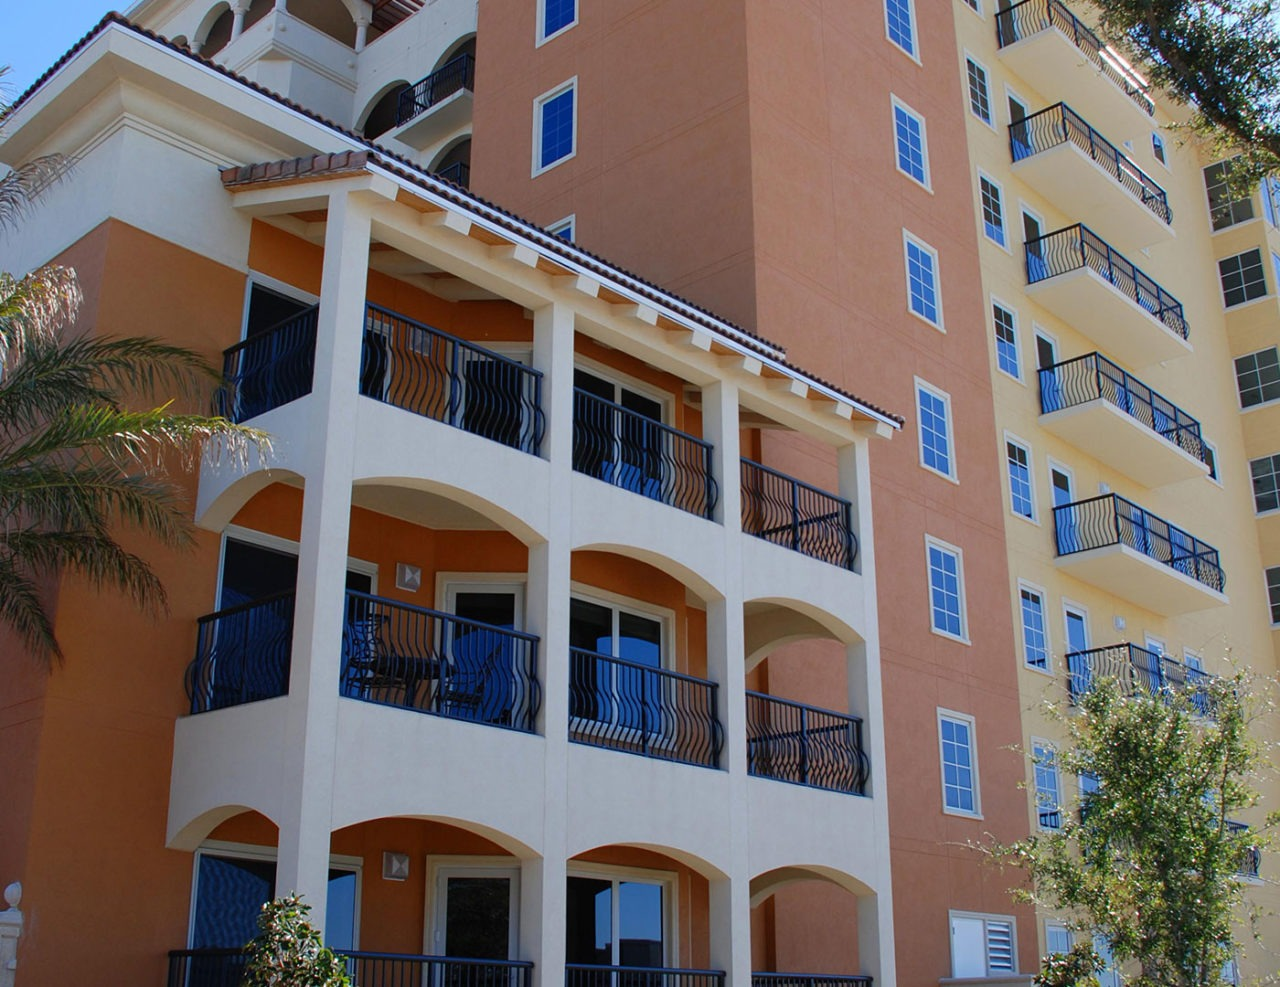 2-Line Picket Balcony Railing Often used in high-rise condominium and resort projects